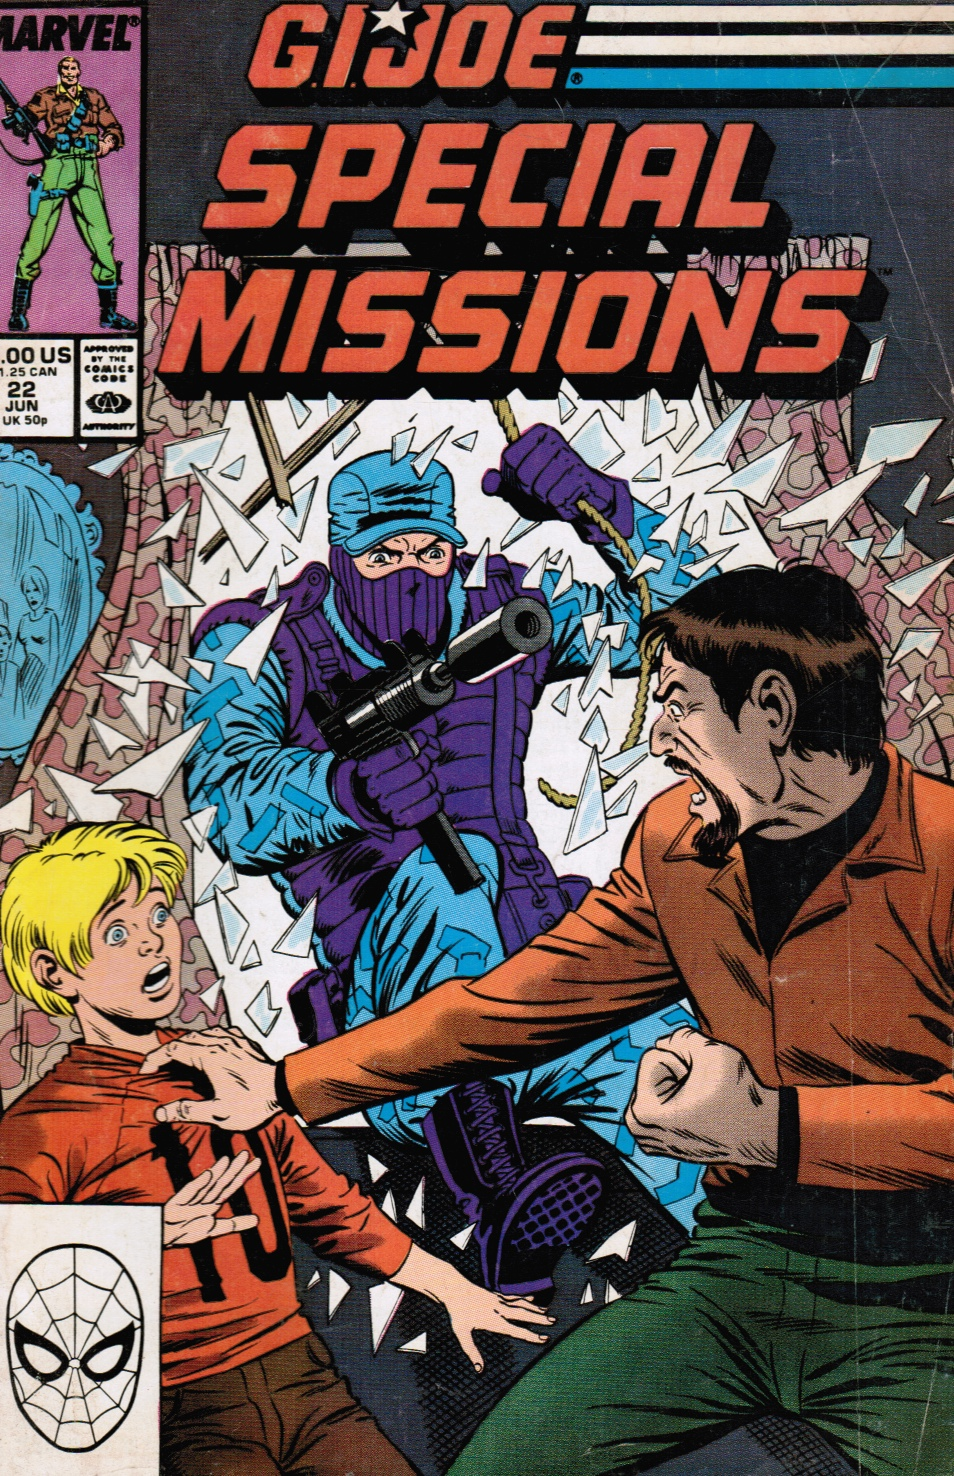 Image for G. I. Joe Special Missions #22